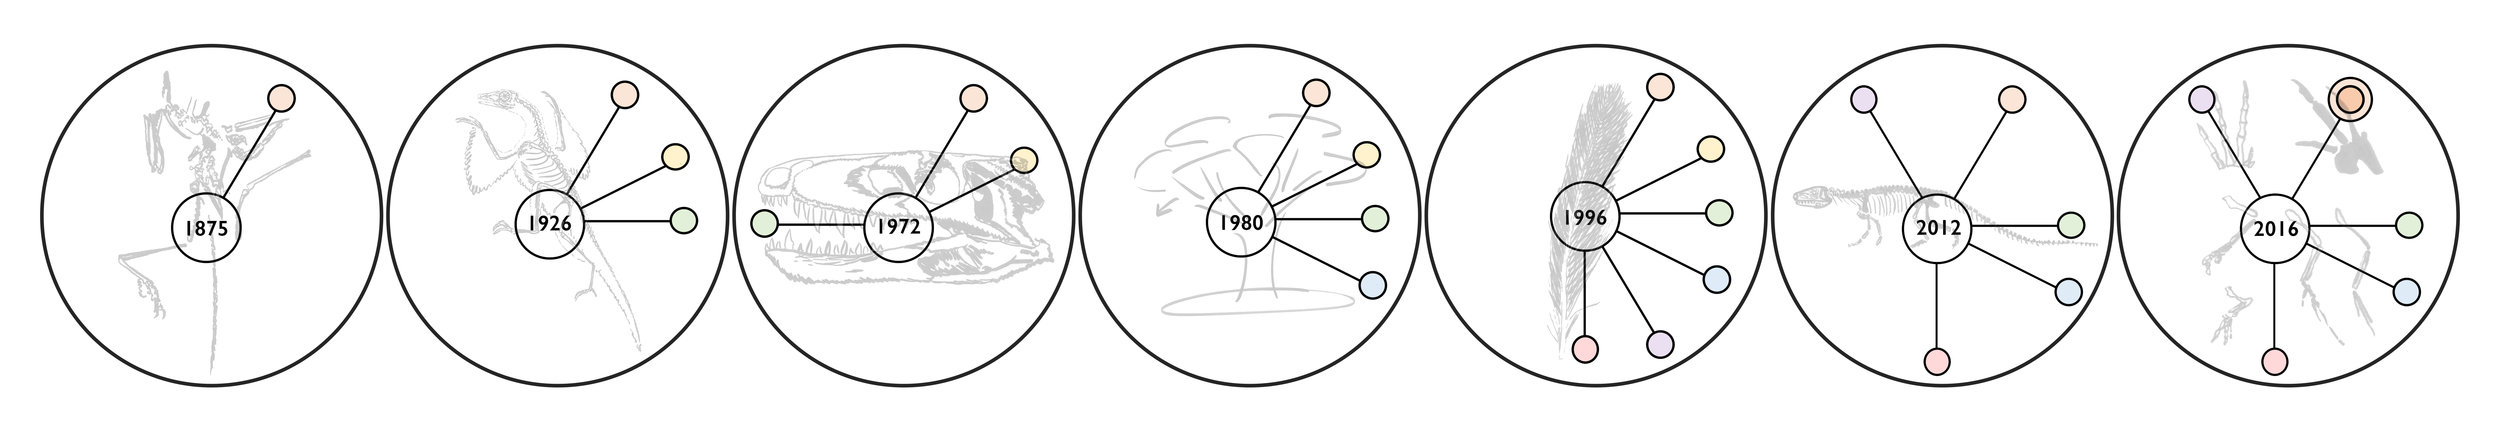 "Figure 4 from Havstad & Smith's ""Fossils with Feathers and Philosophy of Science,"" forthcoming in  Systematic Biology ."